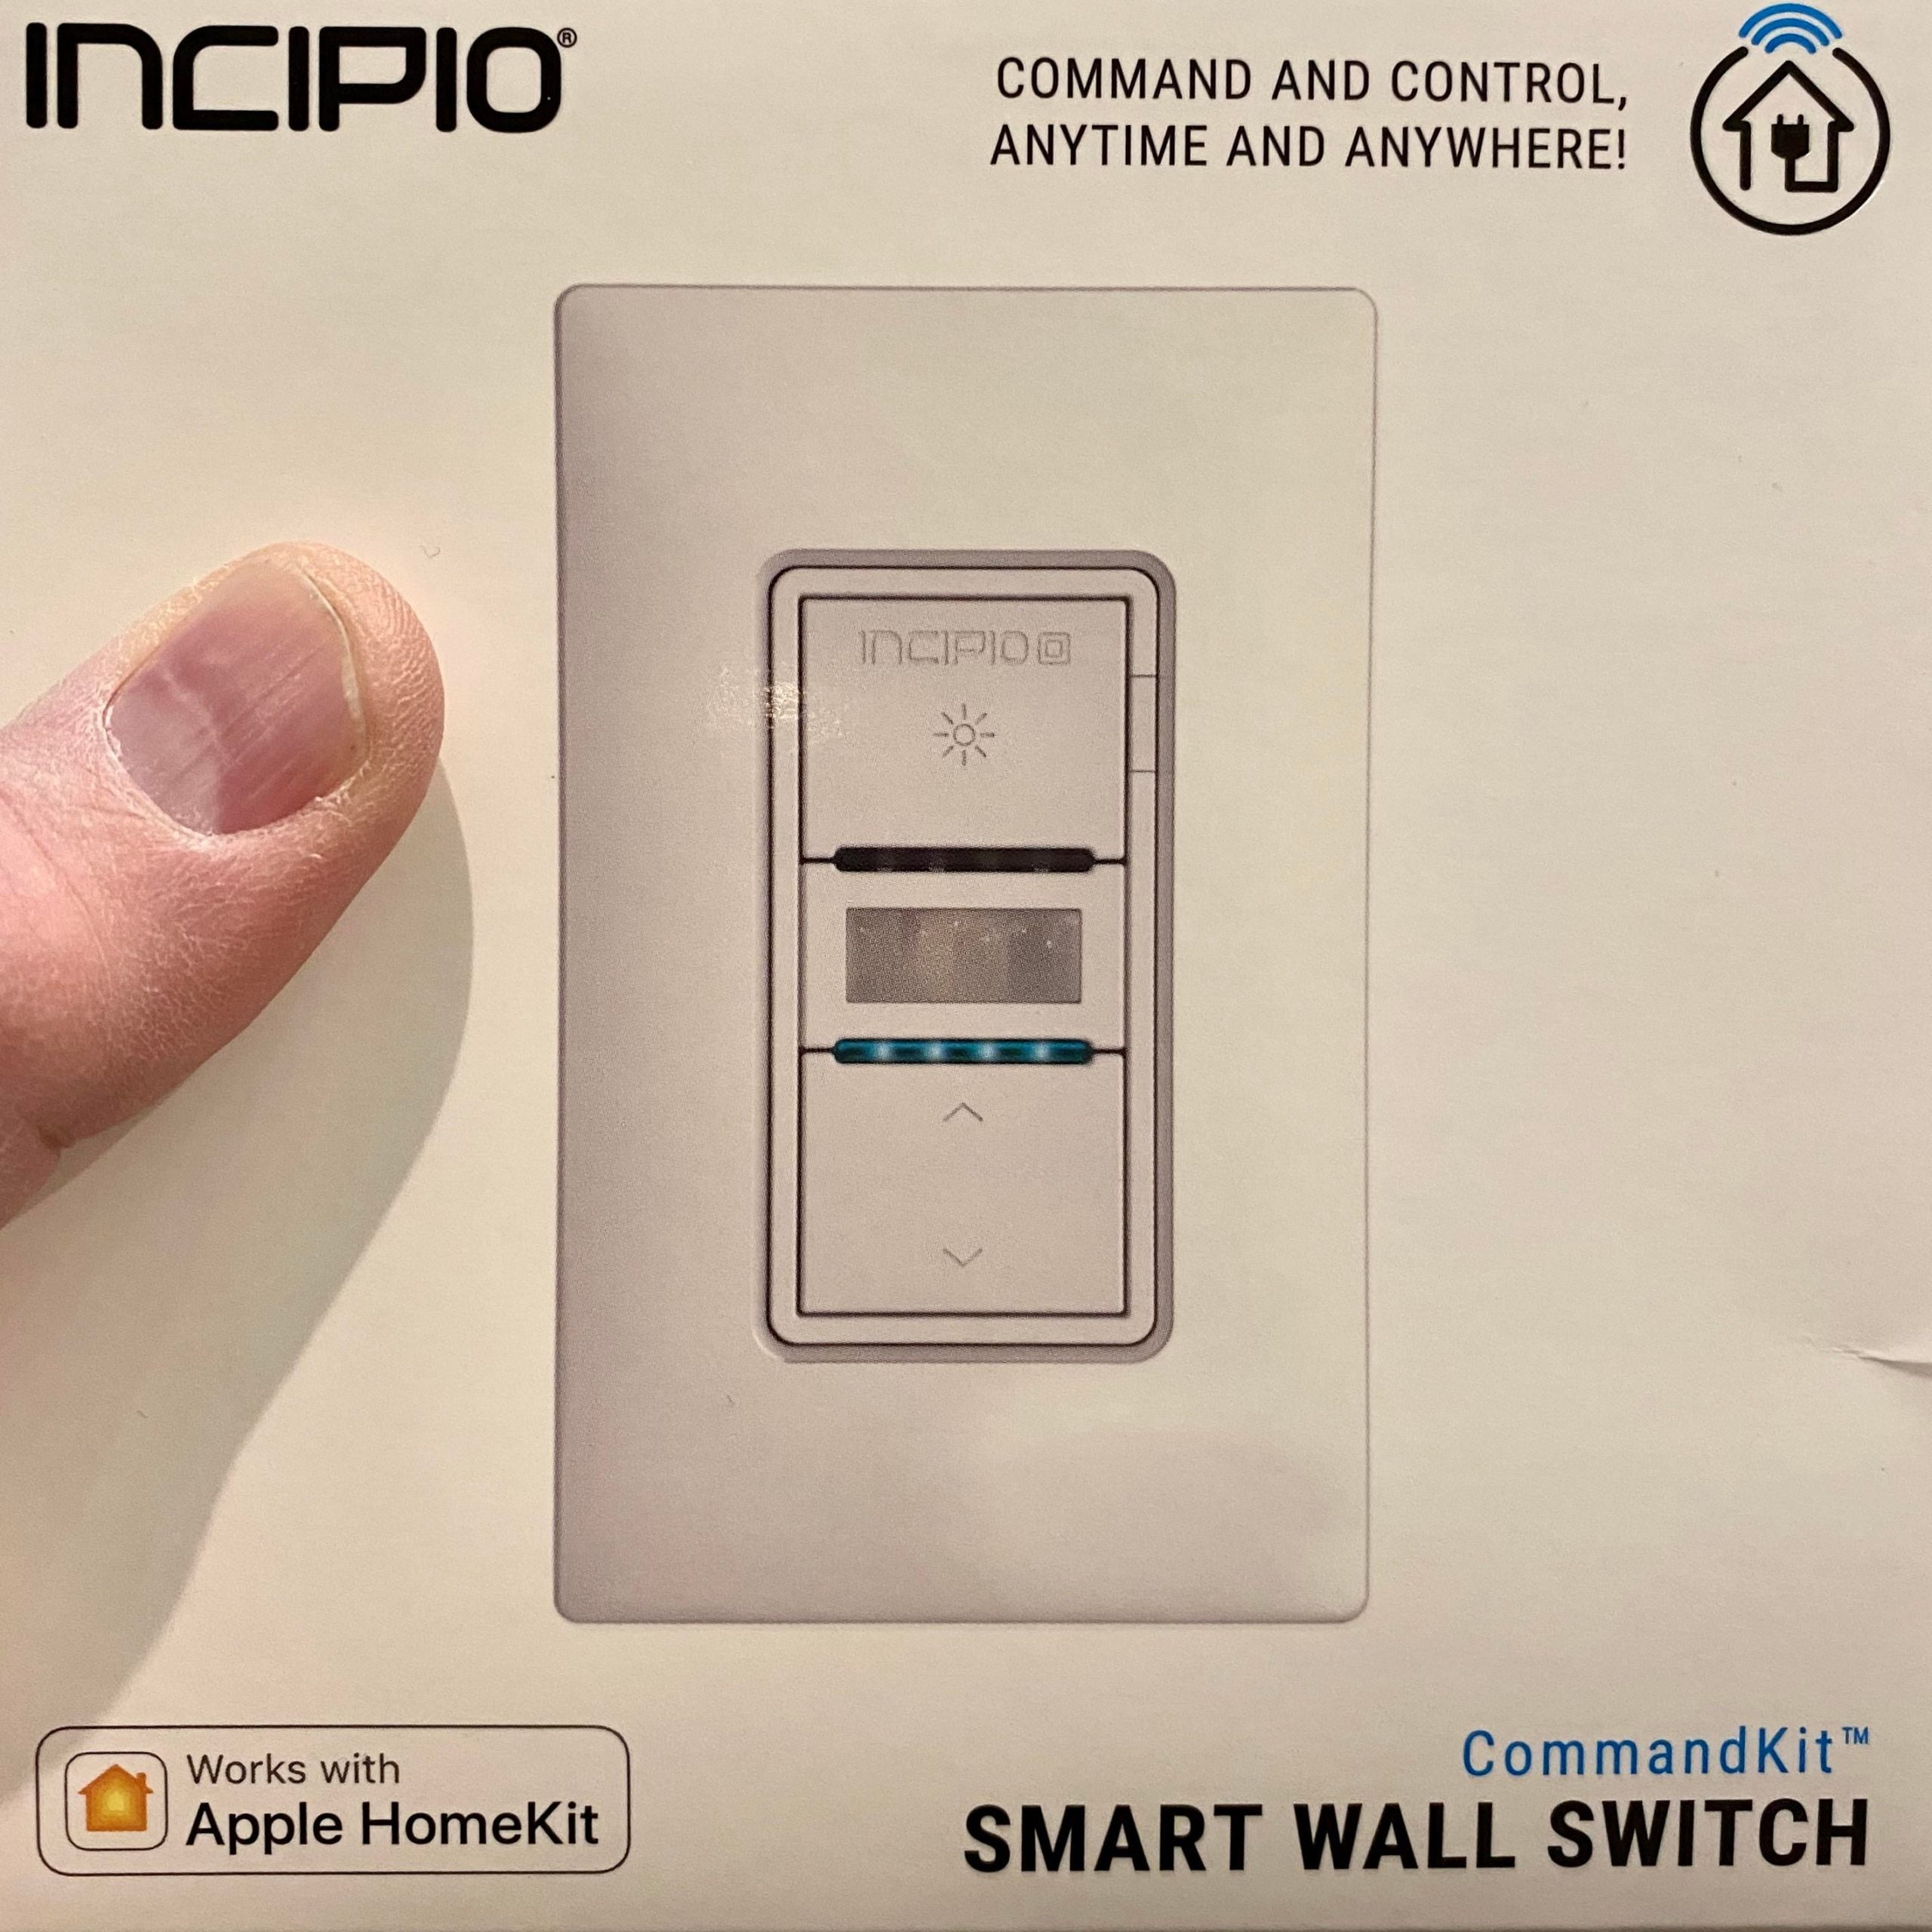 $ 14.43 for a switch with built-in motion / occupancy detector and dimmer. Too nice to be true? Stay tuned...